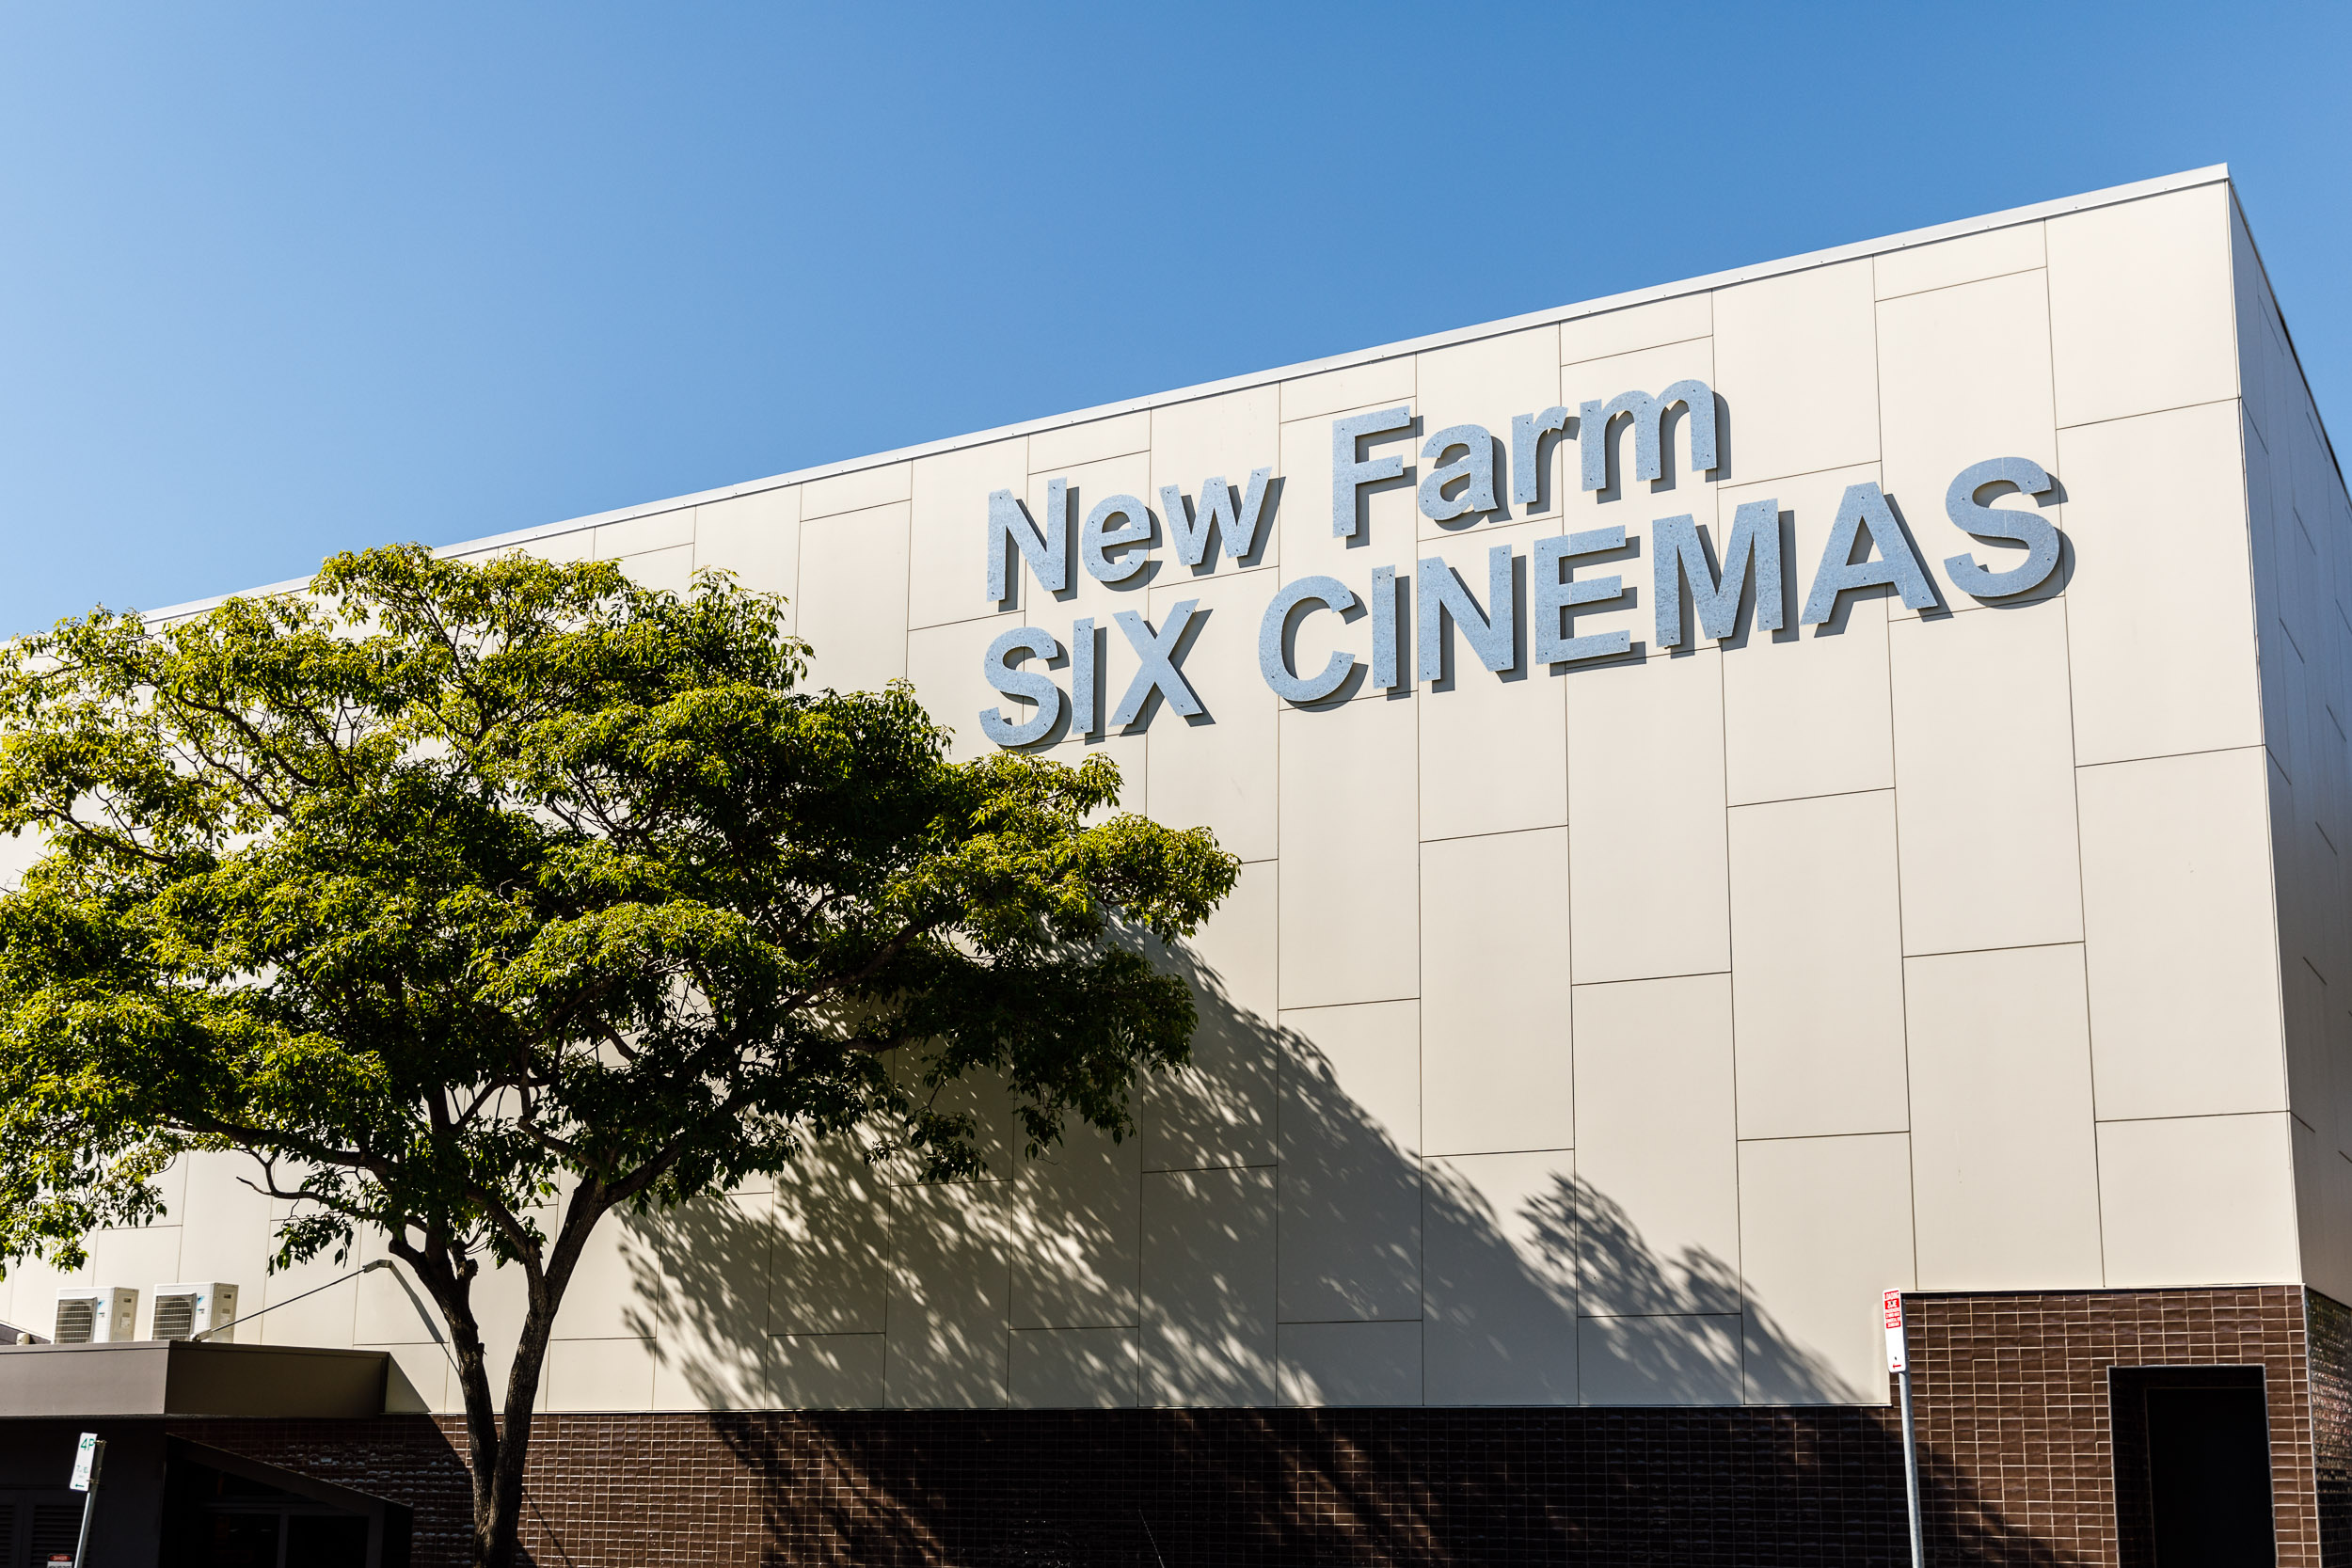 150m to New Farm Six Cinemas